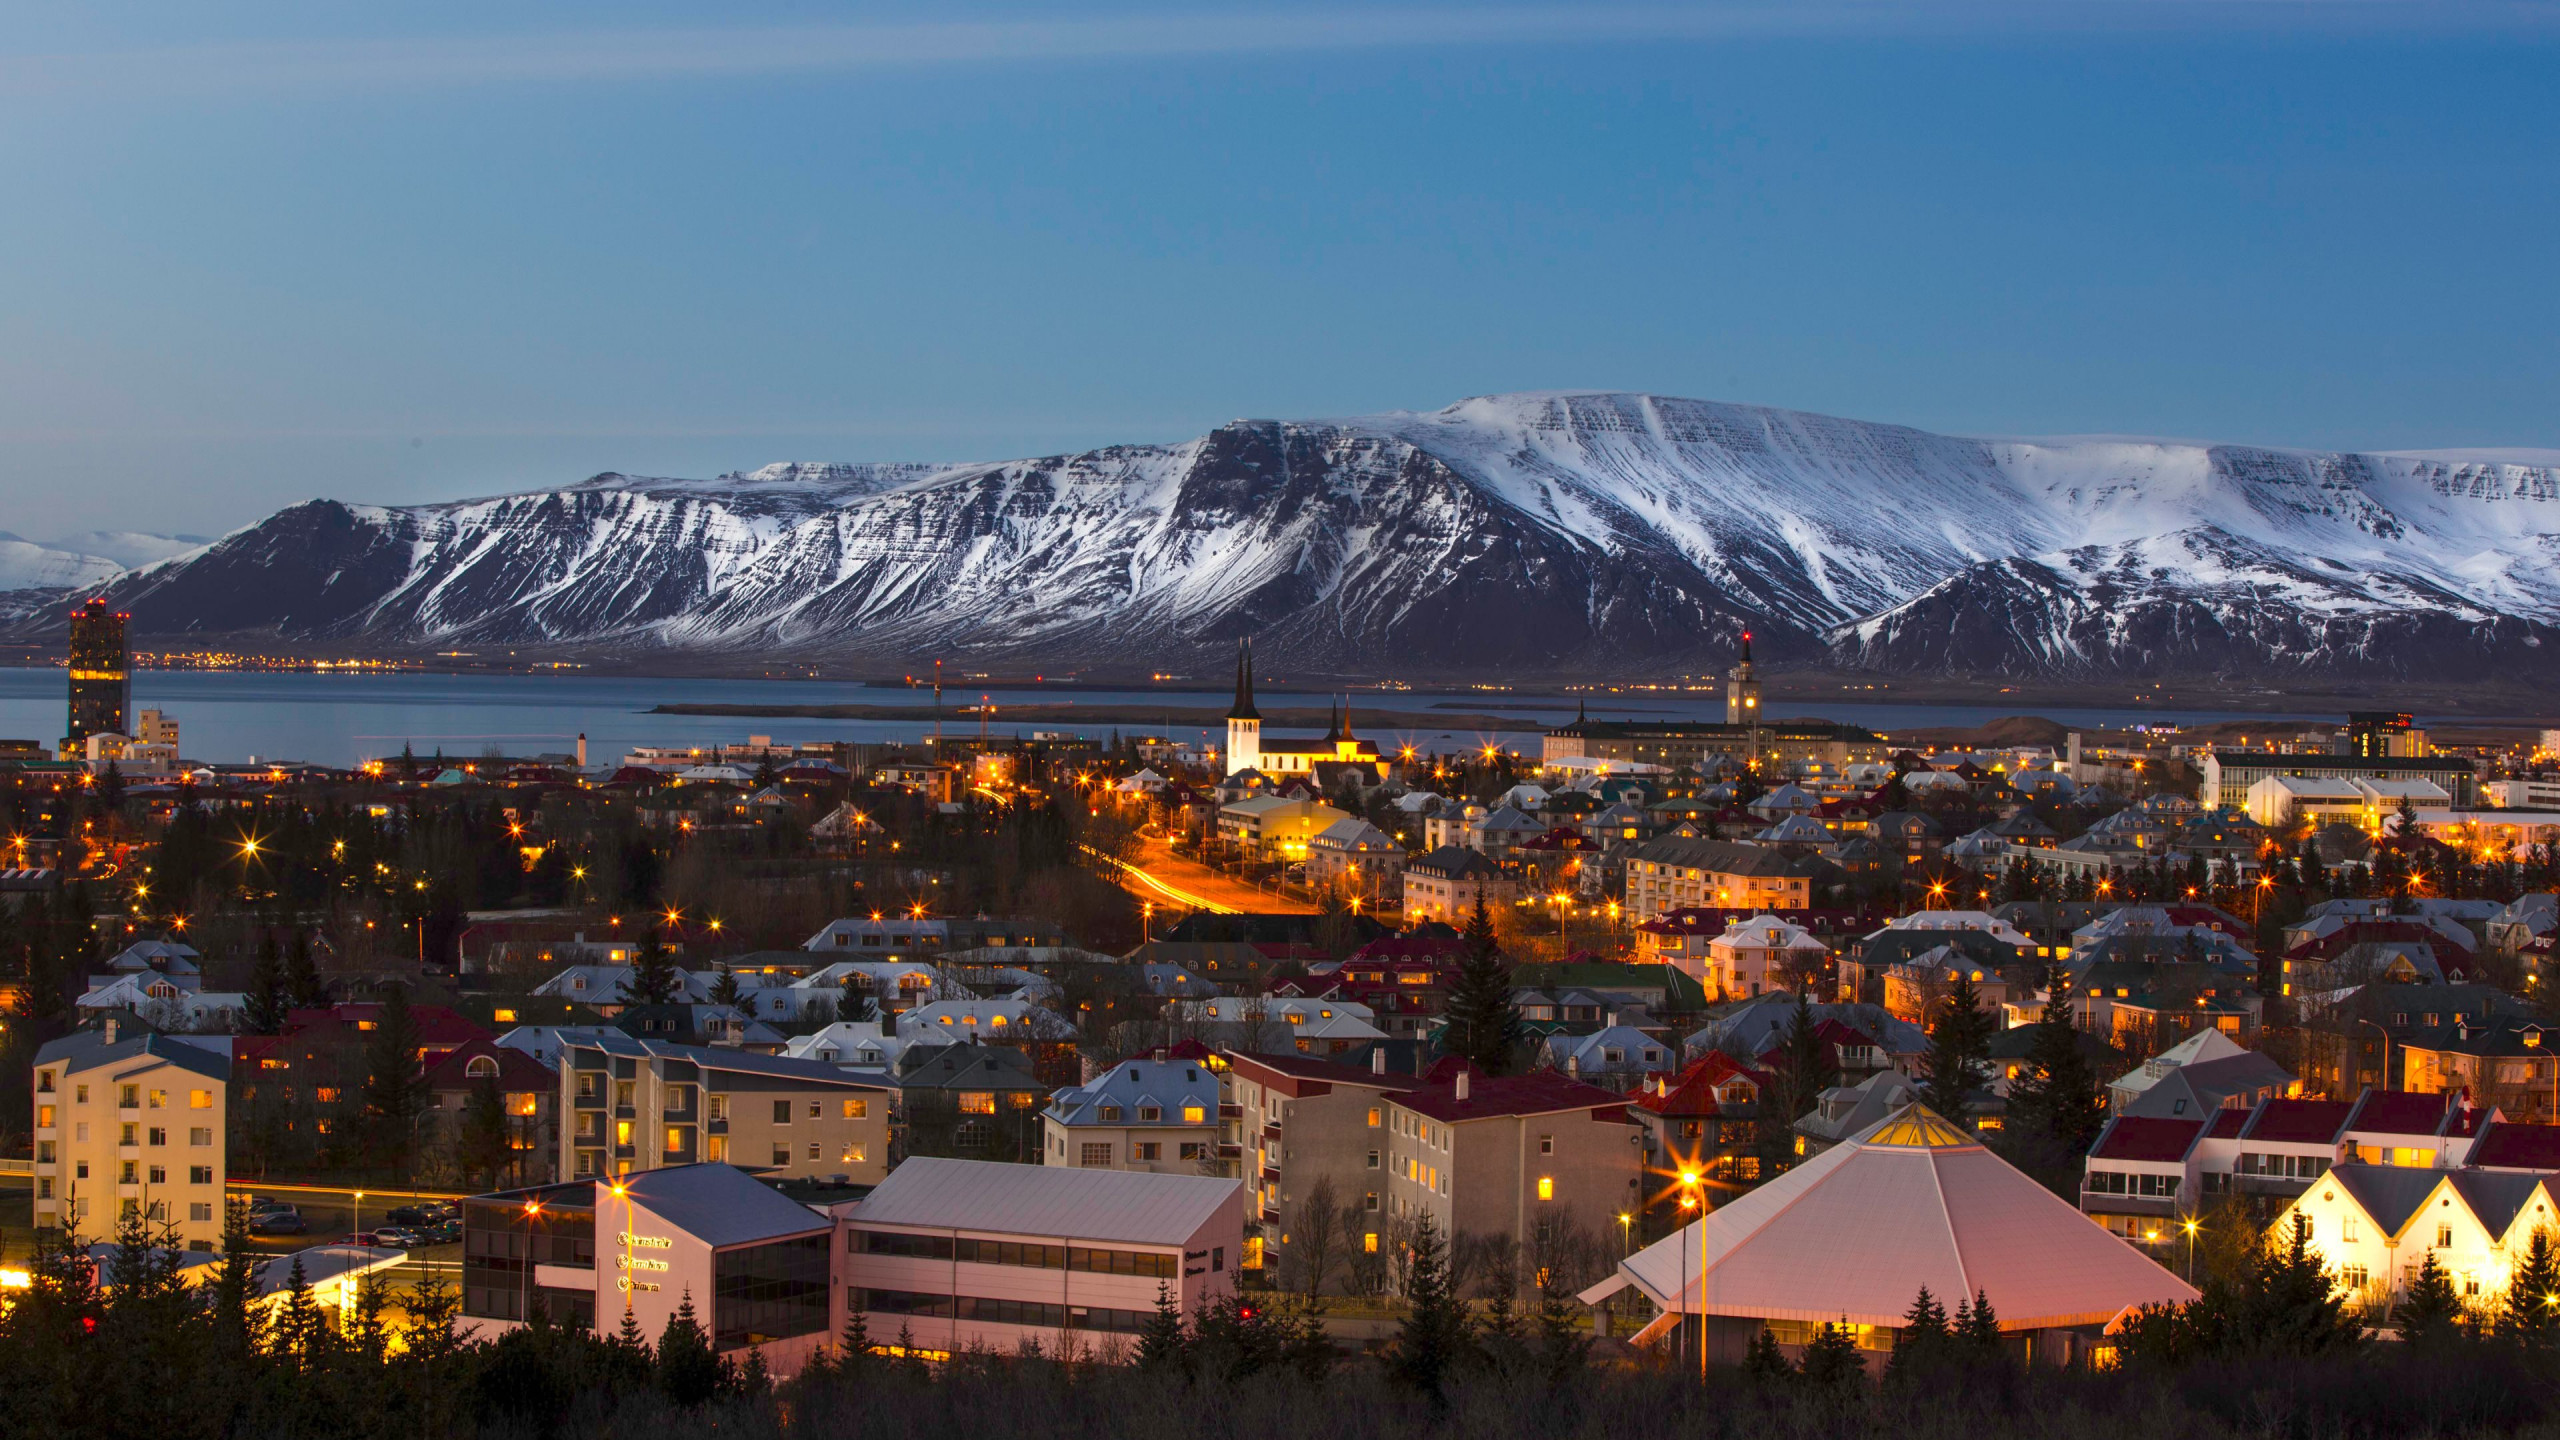 View over the Reykjavik city | 2560x1440 wallpaper